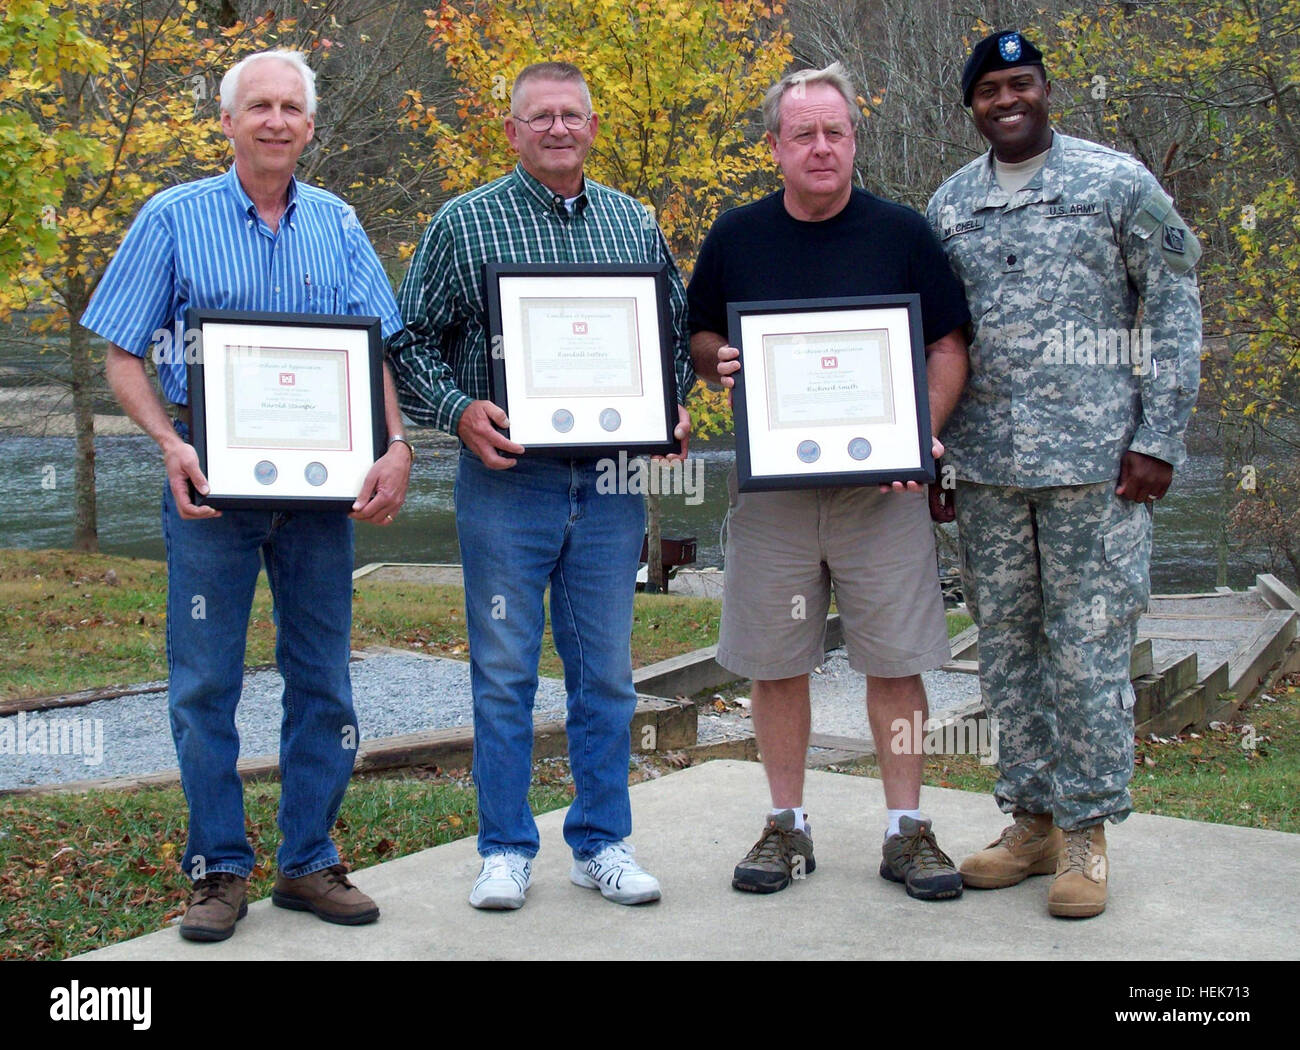 (Left to right) Harold Stamper, Randall Setters, and Lt. Col. Anthony P. Mitchell, U.S. ArmyCorps of Engineers Nashville - Stock Image